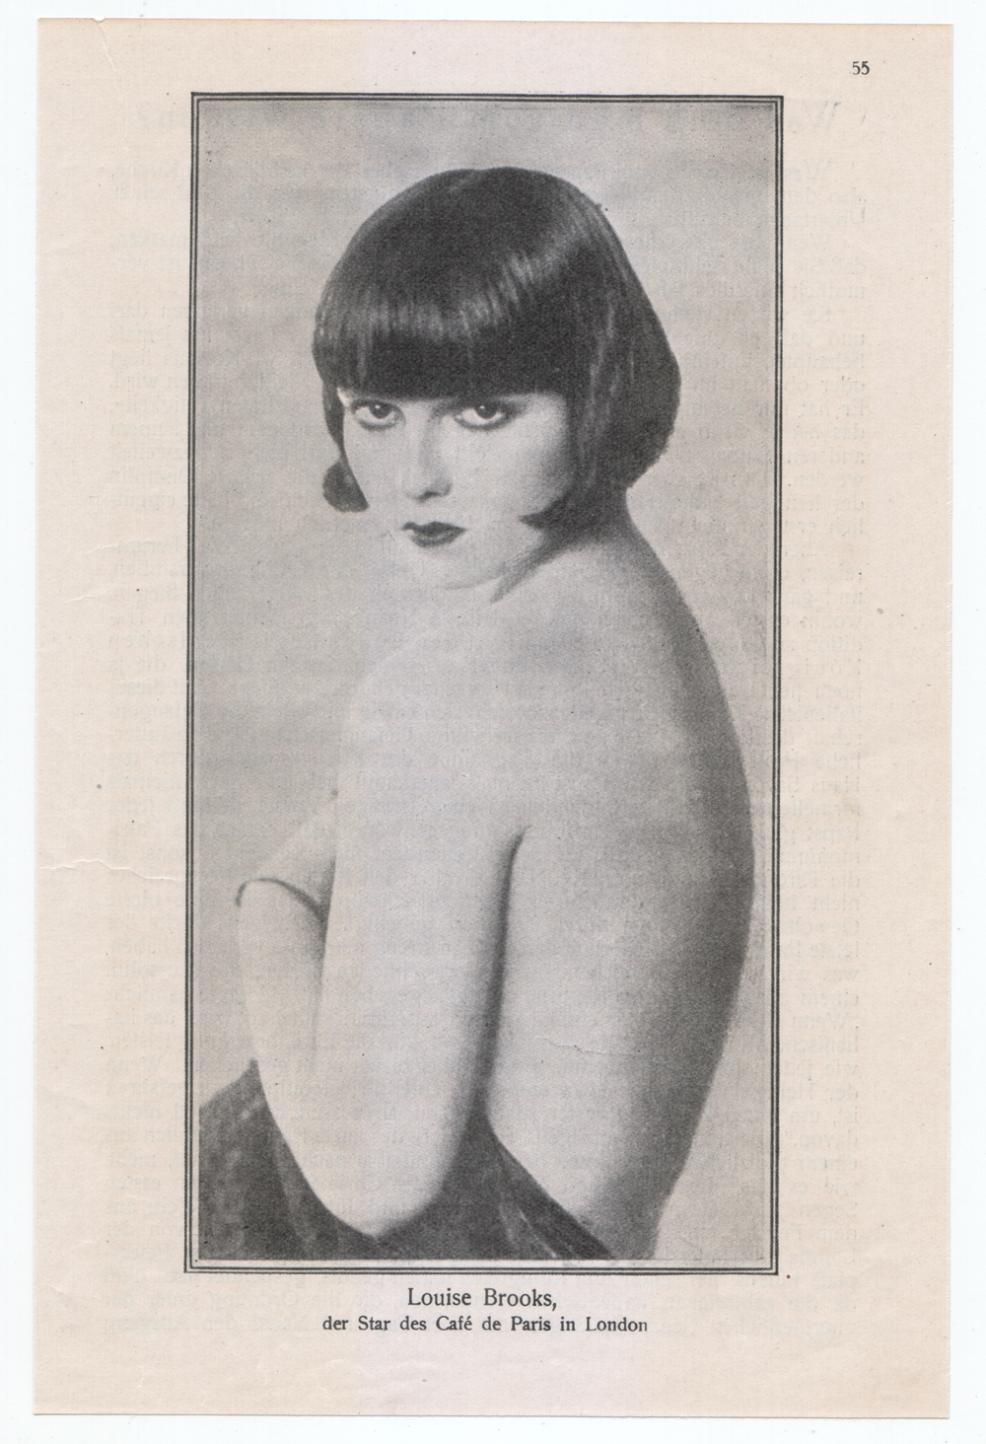 1925 Louise Brooks at the Café de Paris